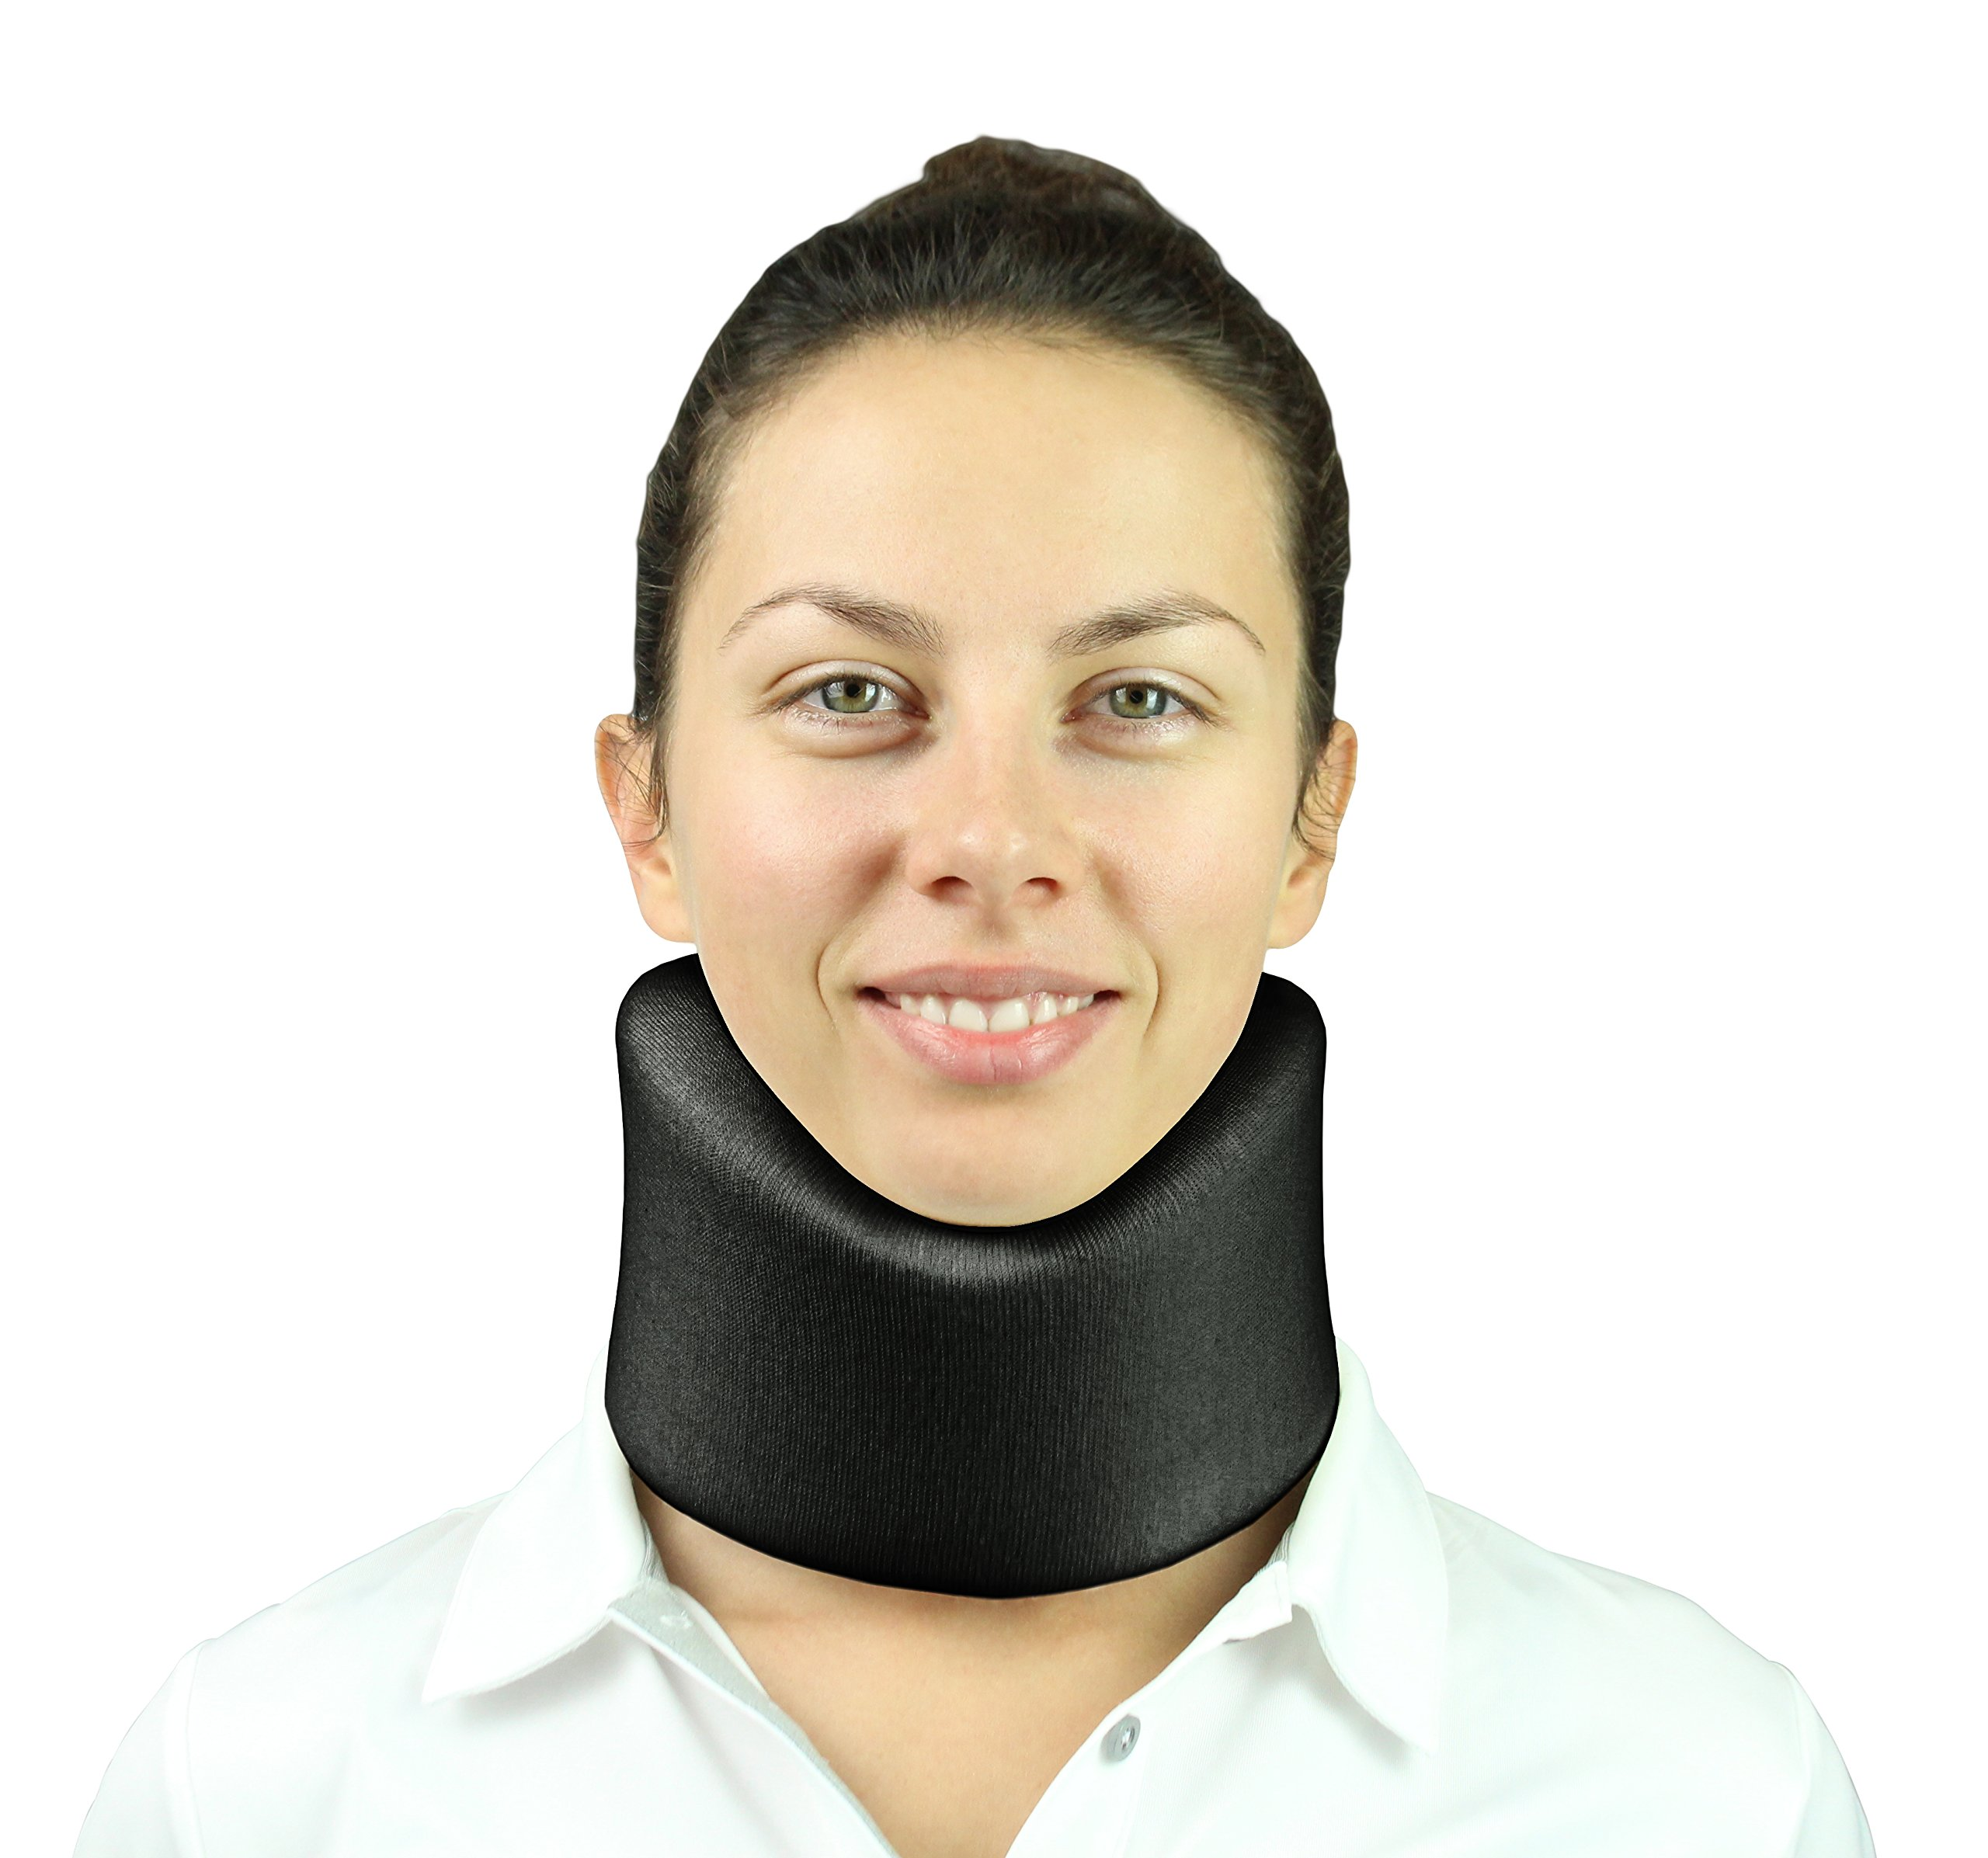 Vive Neck Brace - Cervical Collar - Adjustable Soft Support Collar Can Be Used During Sleep - Wraps Aligns and Stabilizes Vertebrae - Relieves Pain and Pressure in Spine (Black) by VIVE (Image #1)